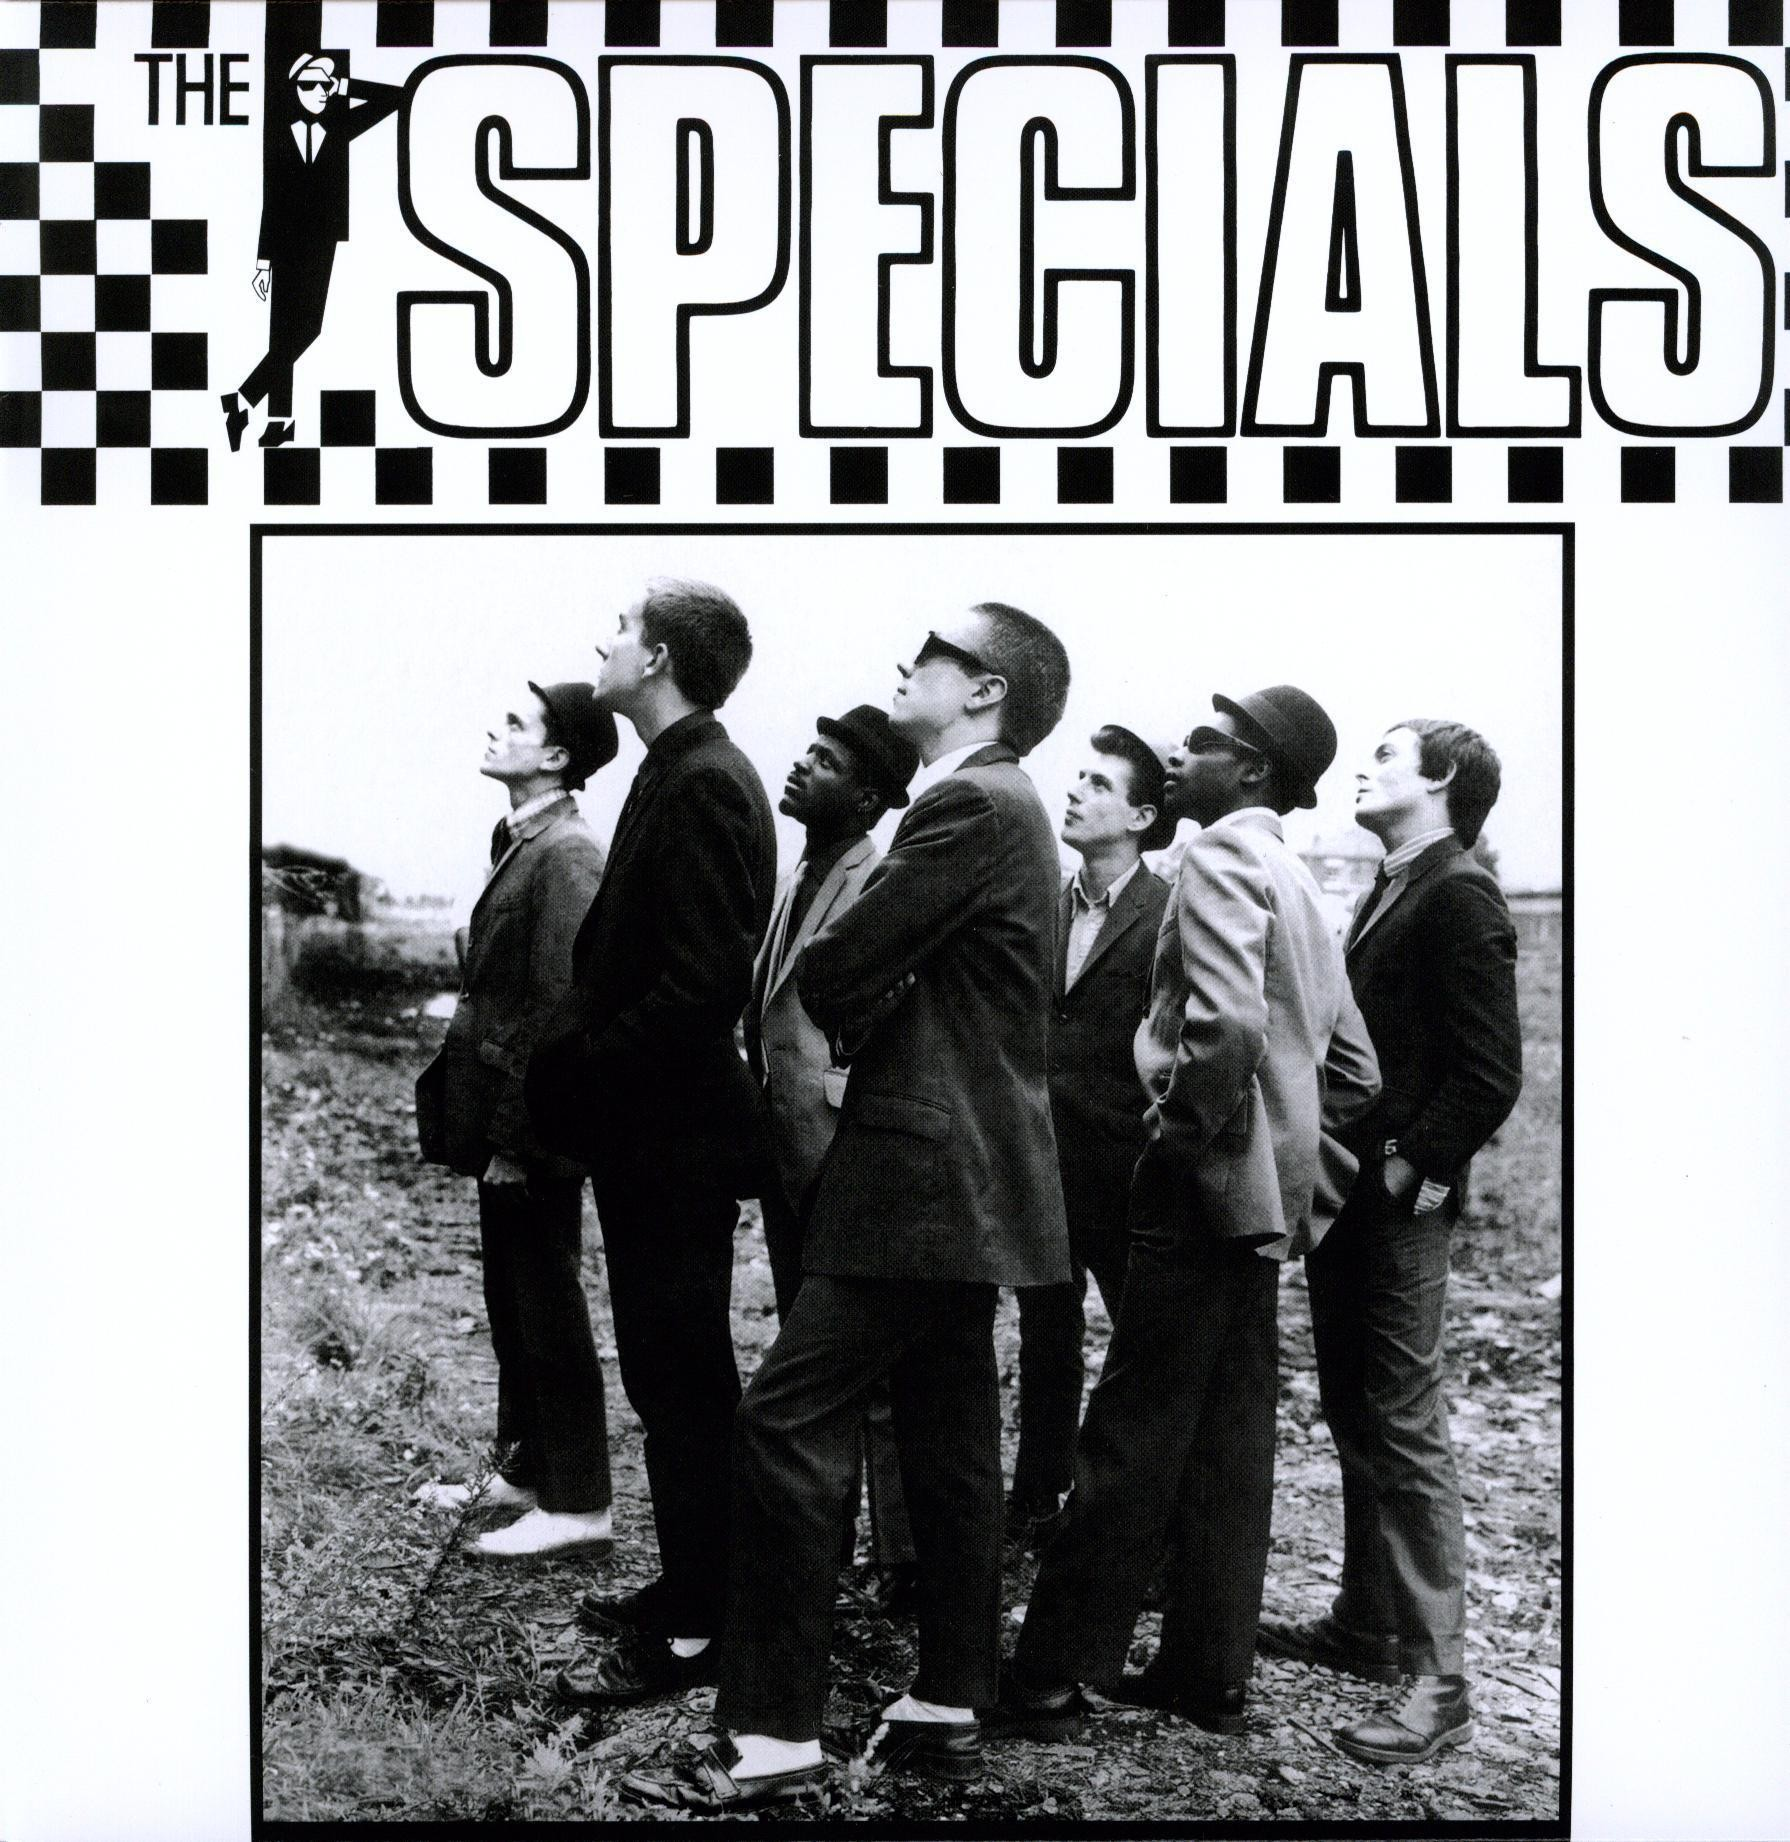 John Bradbury Of The Specials Has Died